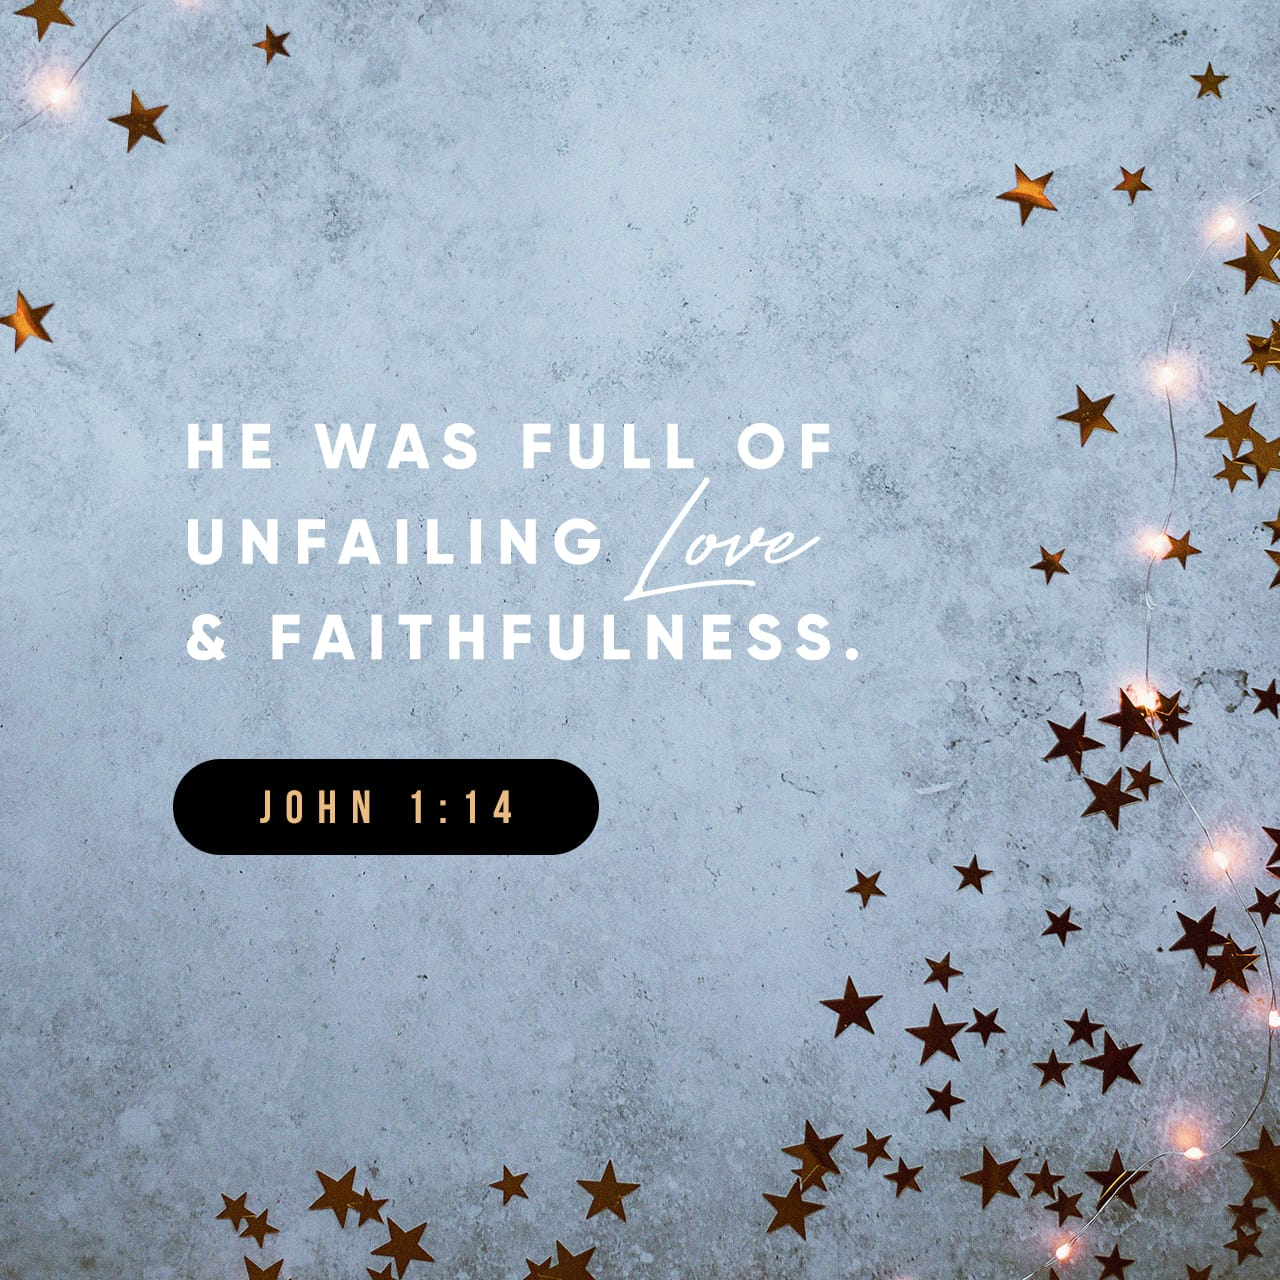 John 1:14 And the Word was made flesh, and dwelt among us, (and we beheld his glory, the glory as of the only begotten of the Father,) full of grace and truth. | King James Version (KJV)